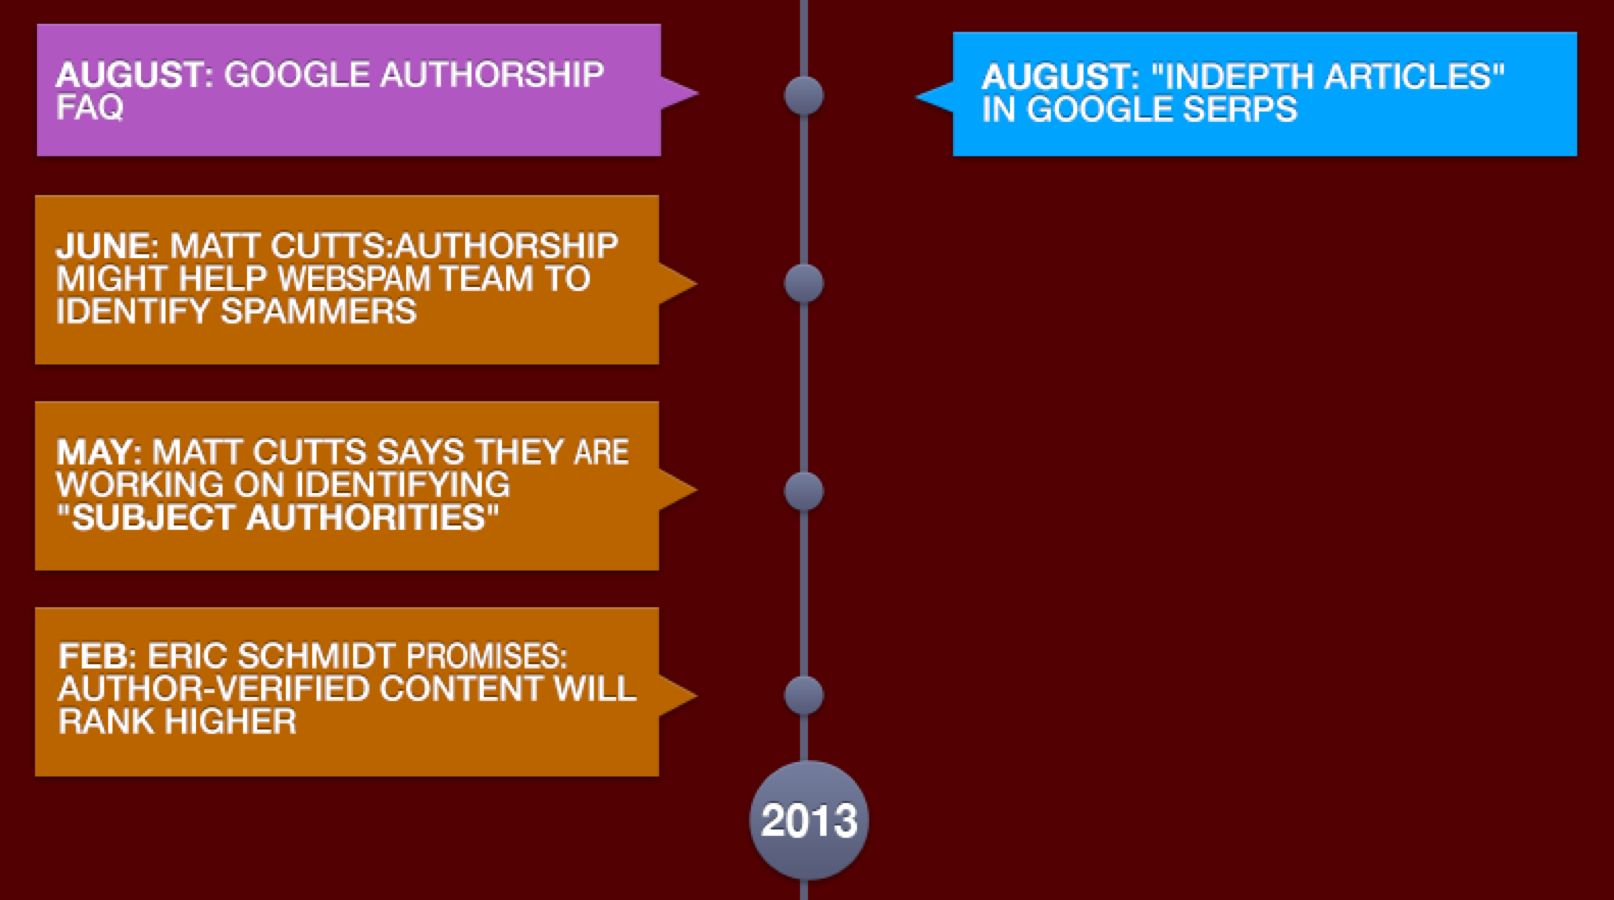 Authorship timeline